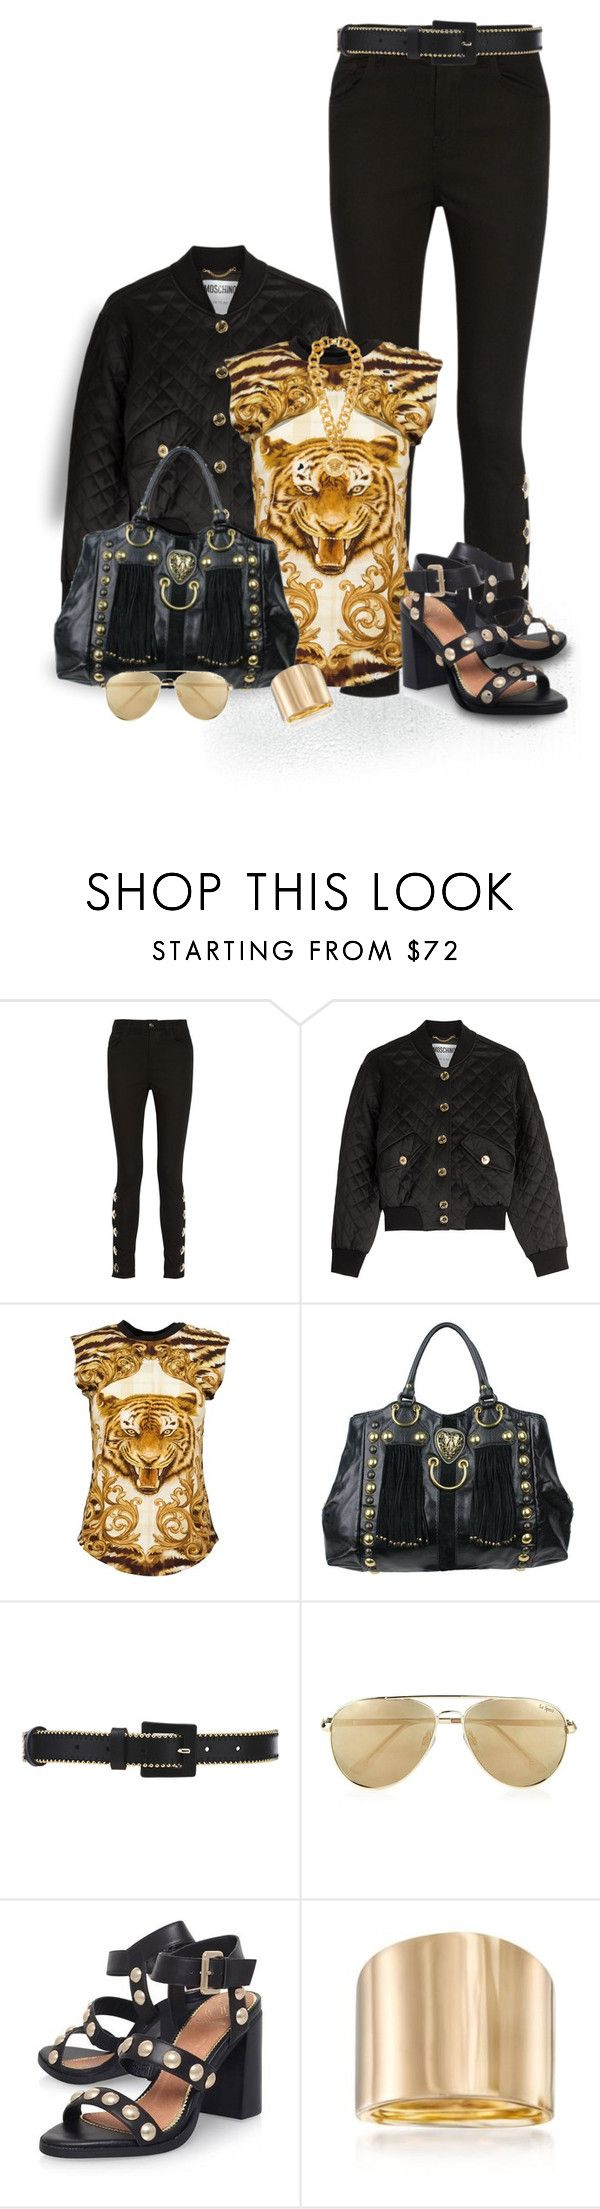 """moschino Bomber Jacket"" by seahag2903 ❤ liked on Polyvore featuring Anthony Vaccarello, Moschino, Balmain, Gucci, Oscar de la Renta, Le Specs, KG Kurt Geiger, Ross-Simons and Versace"